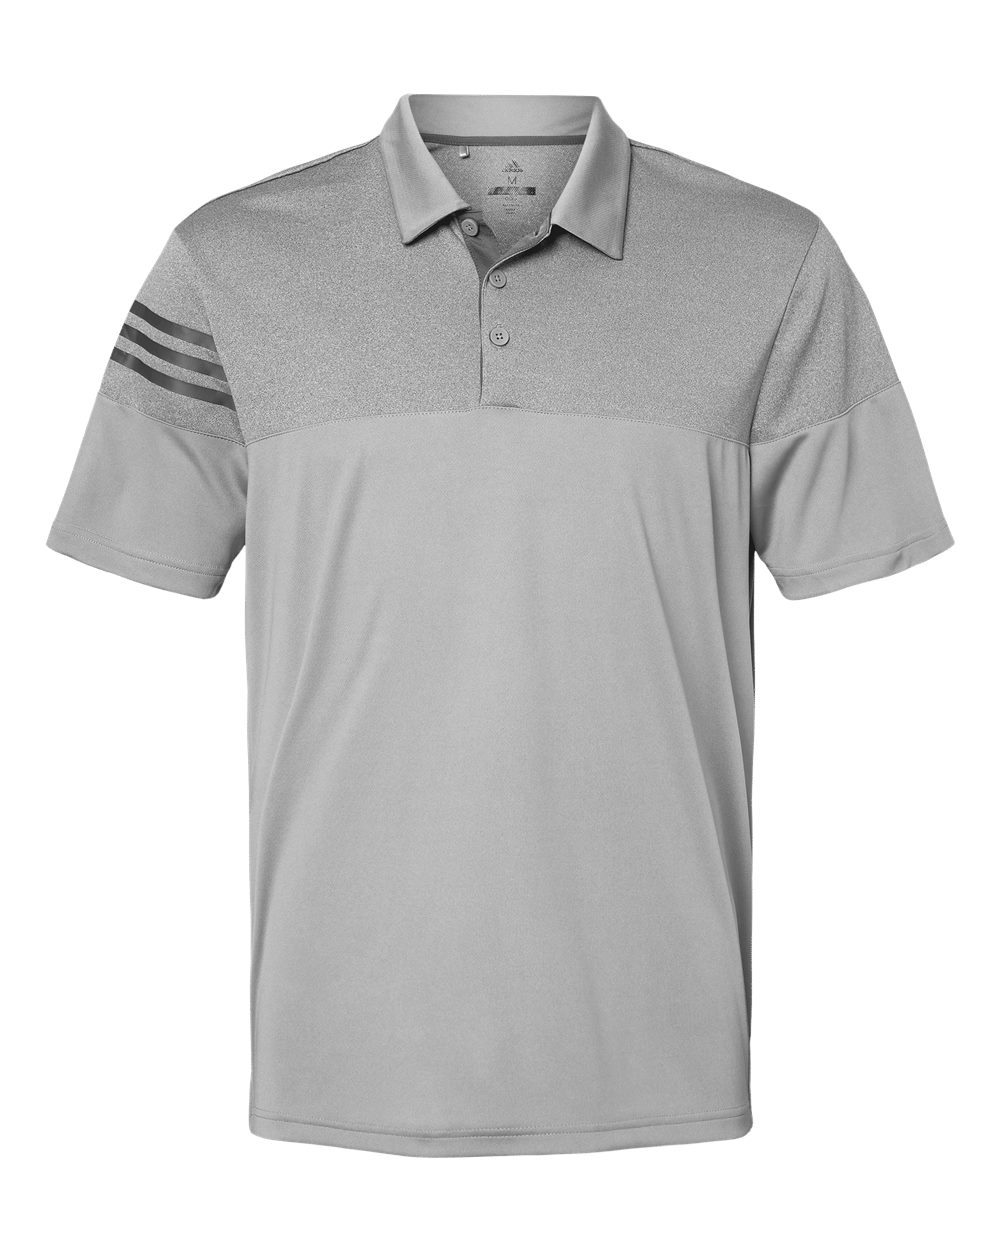 Adidas-Heather-3-Stripes-Block-Sport-Shirt-Polo-Button-A213-up-to-3XL thumbnail 21